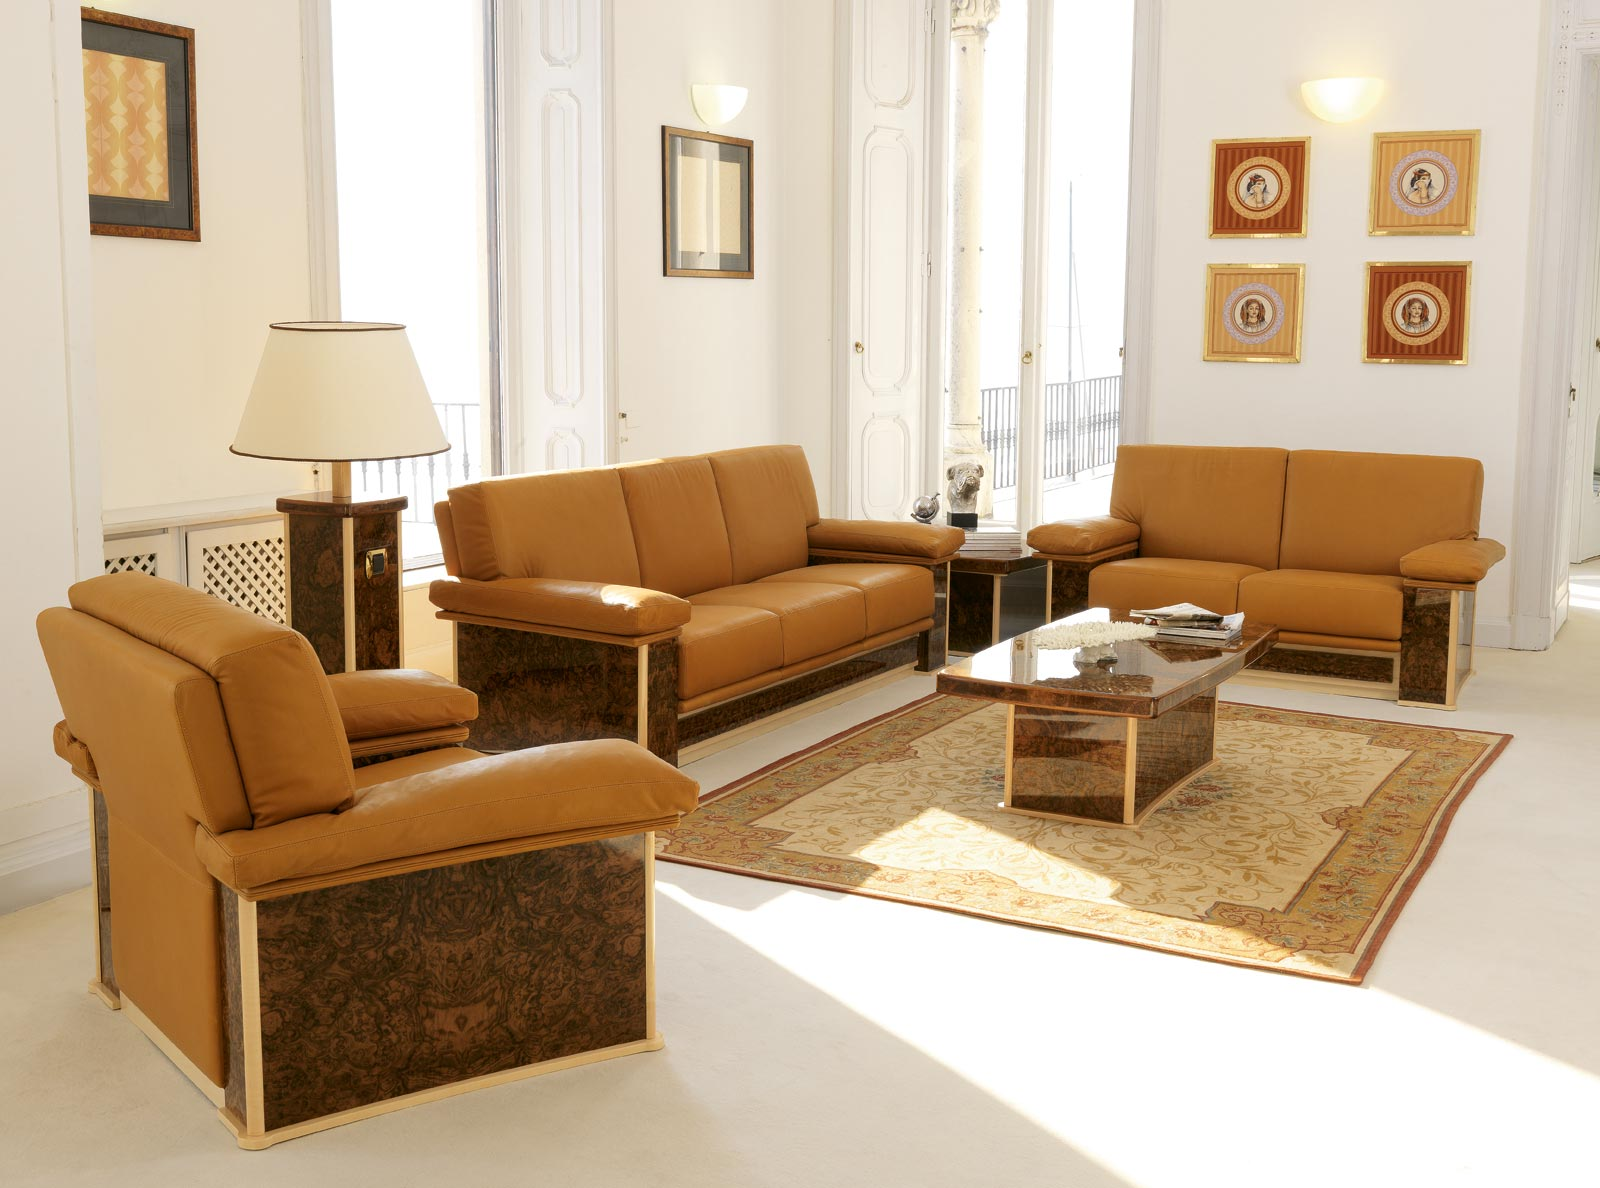 revolving chair manufacturers in ahmedabad yoga exercises executive office sofa sets home the honoroak